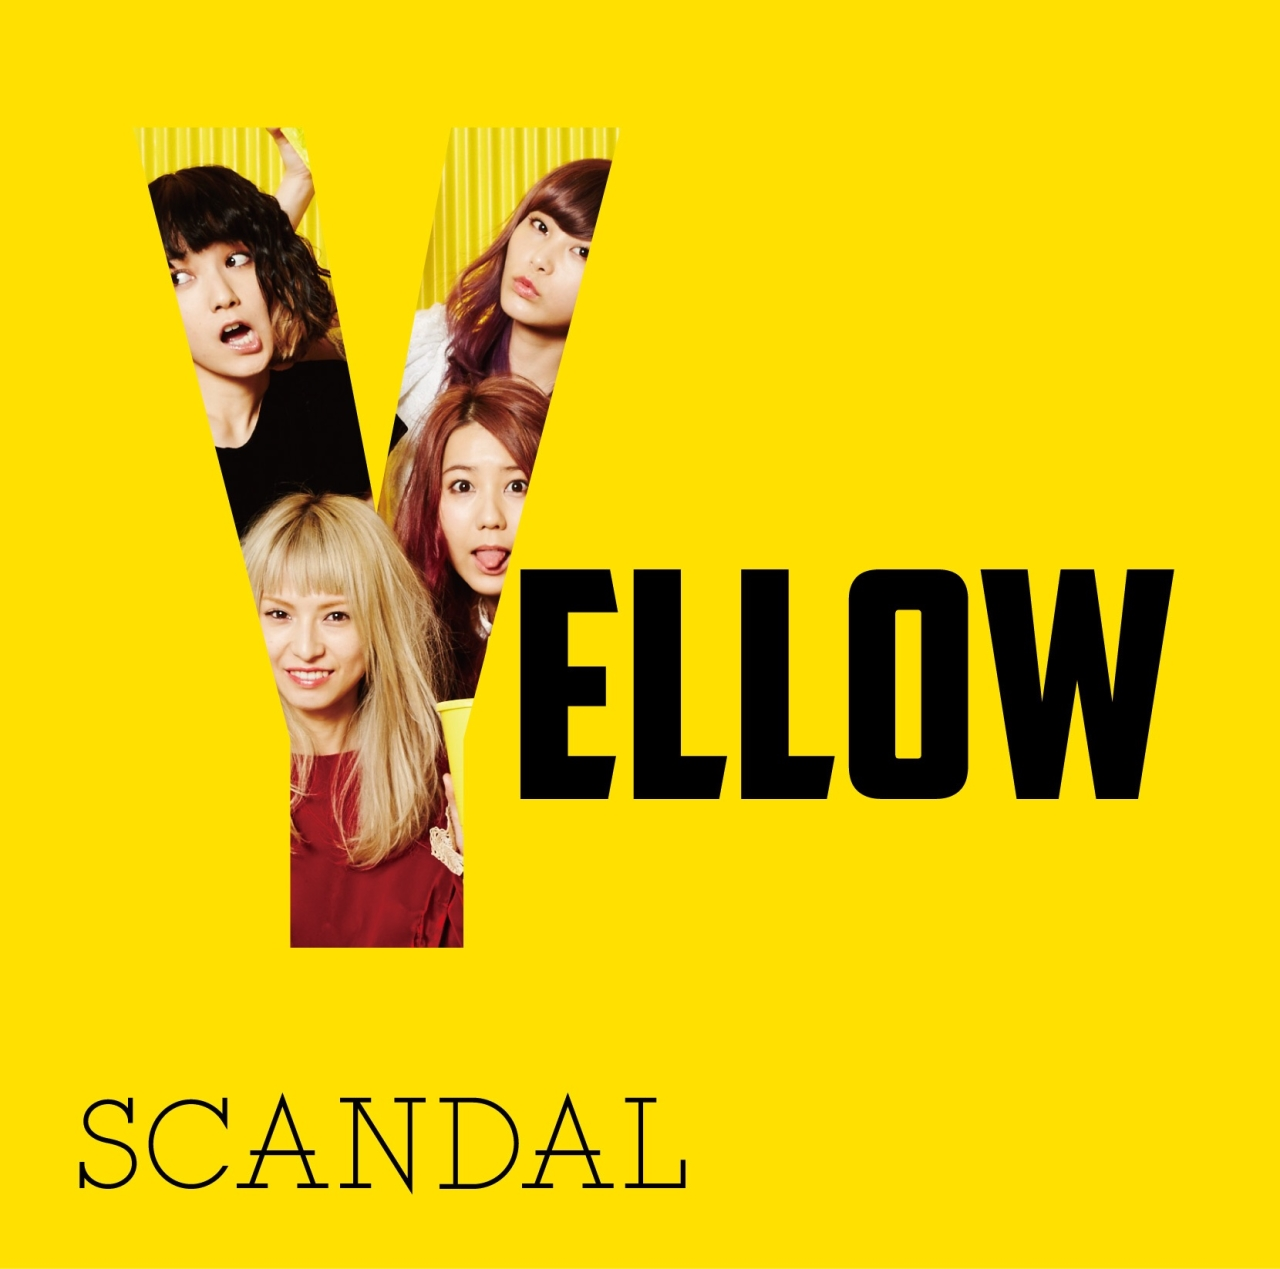 SCANDAL-Yellow-DVD